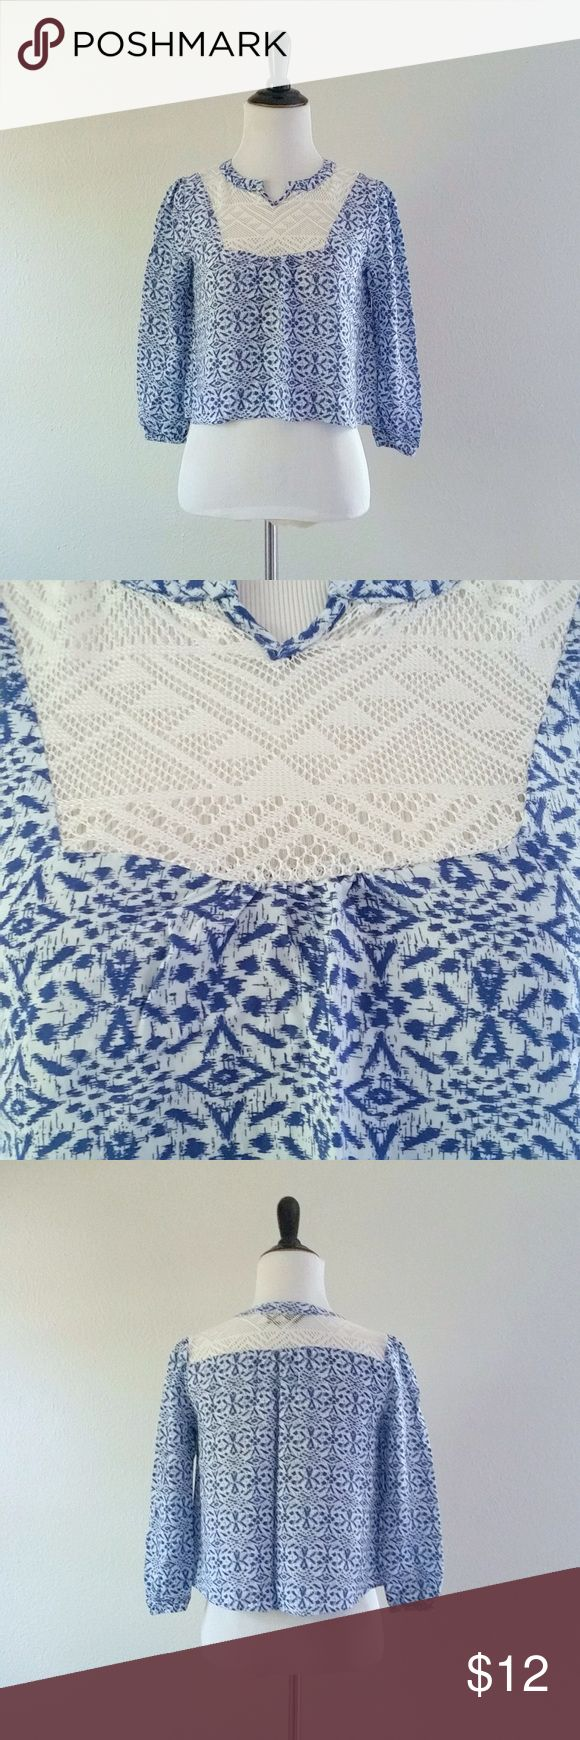 """Blue and White Cropped Blouse Blue and white crop top by Full Tilt. Has lace paneling and ¾ length sleeves. In excellent condition!  